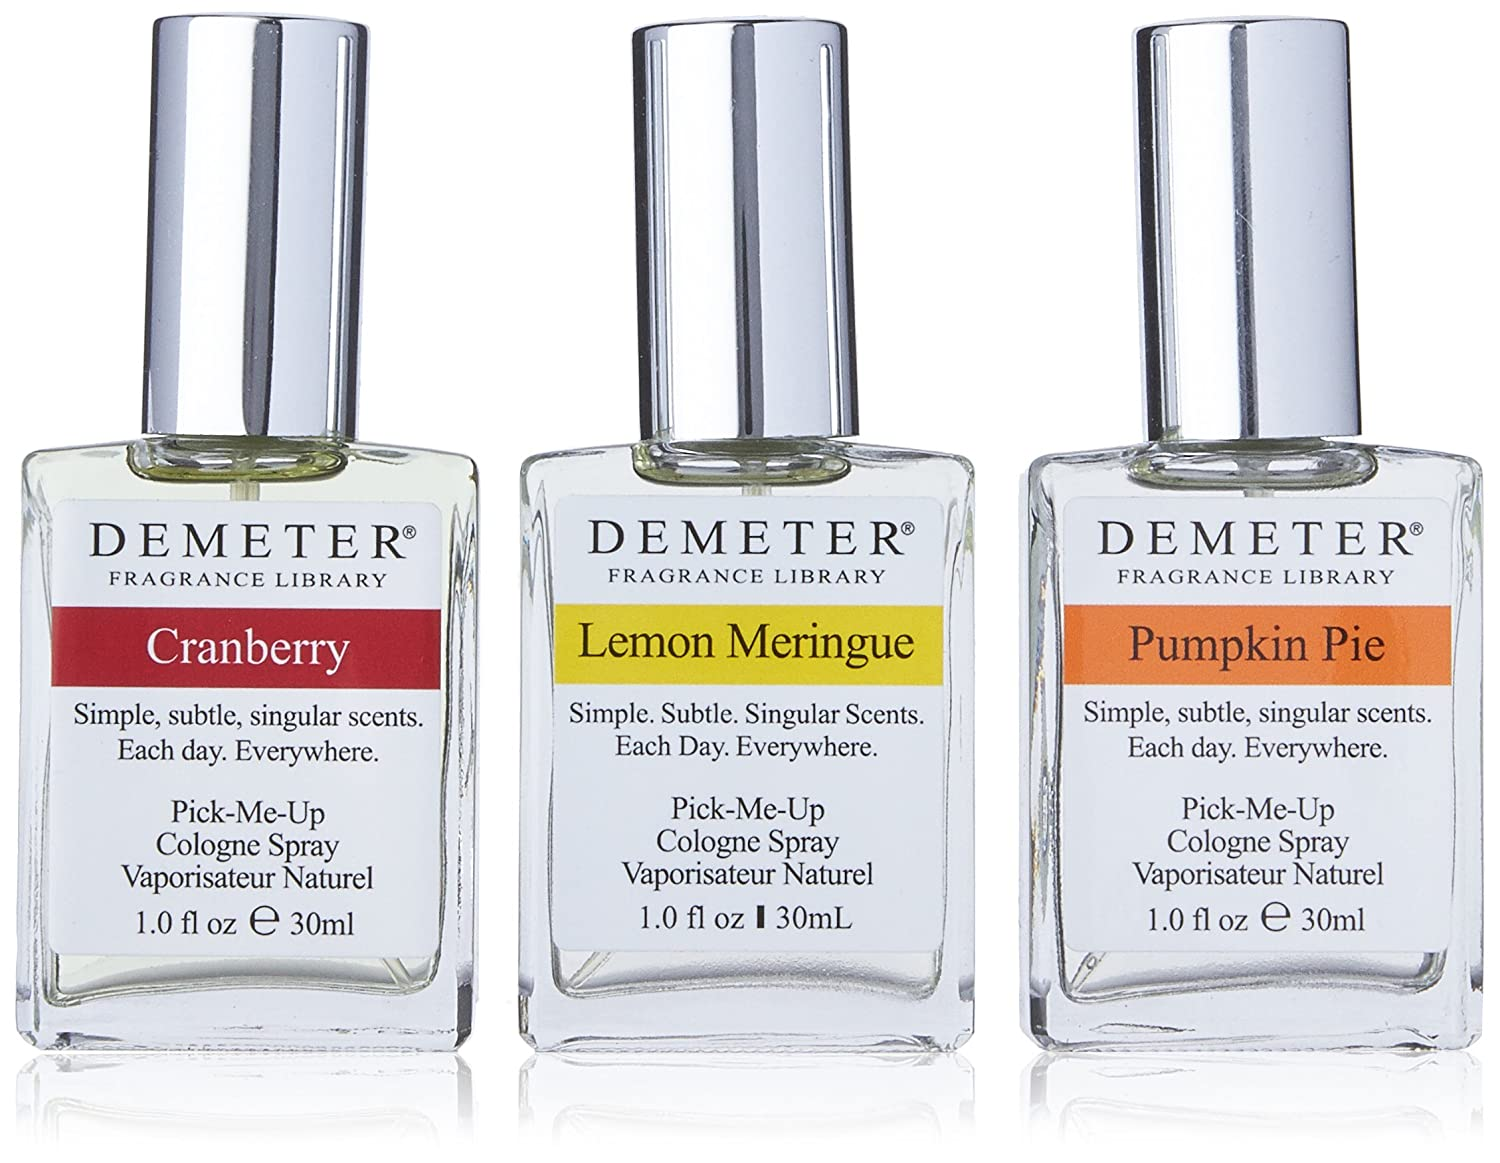 Blending Trio by Demeter for Unisex - 3 Pc Gift Set 1oz Cranberry Cologne Spray, 1oz Pumpkin Pie Cologne Spray, 1oz Lemon Meringue Cologne Spray (Limited Edition) DEMT4